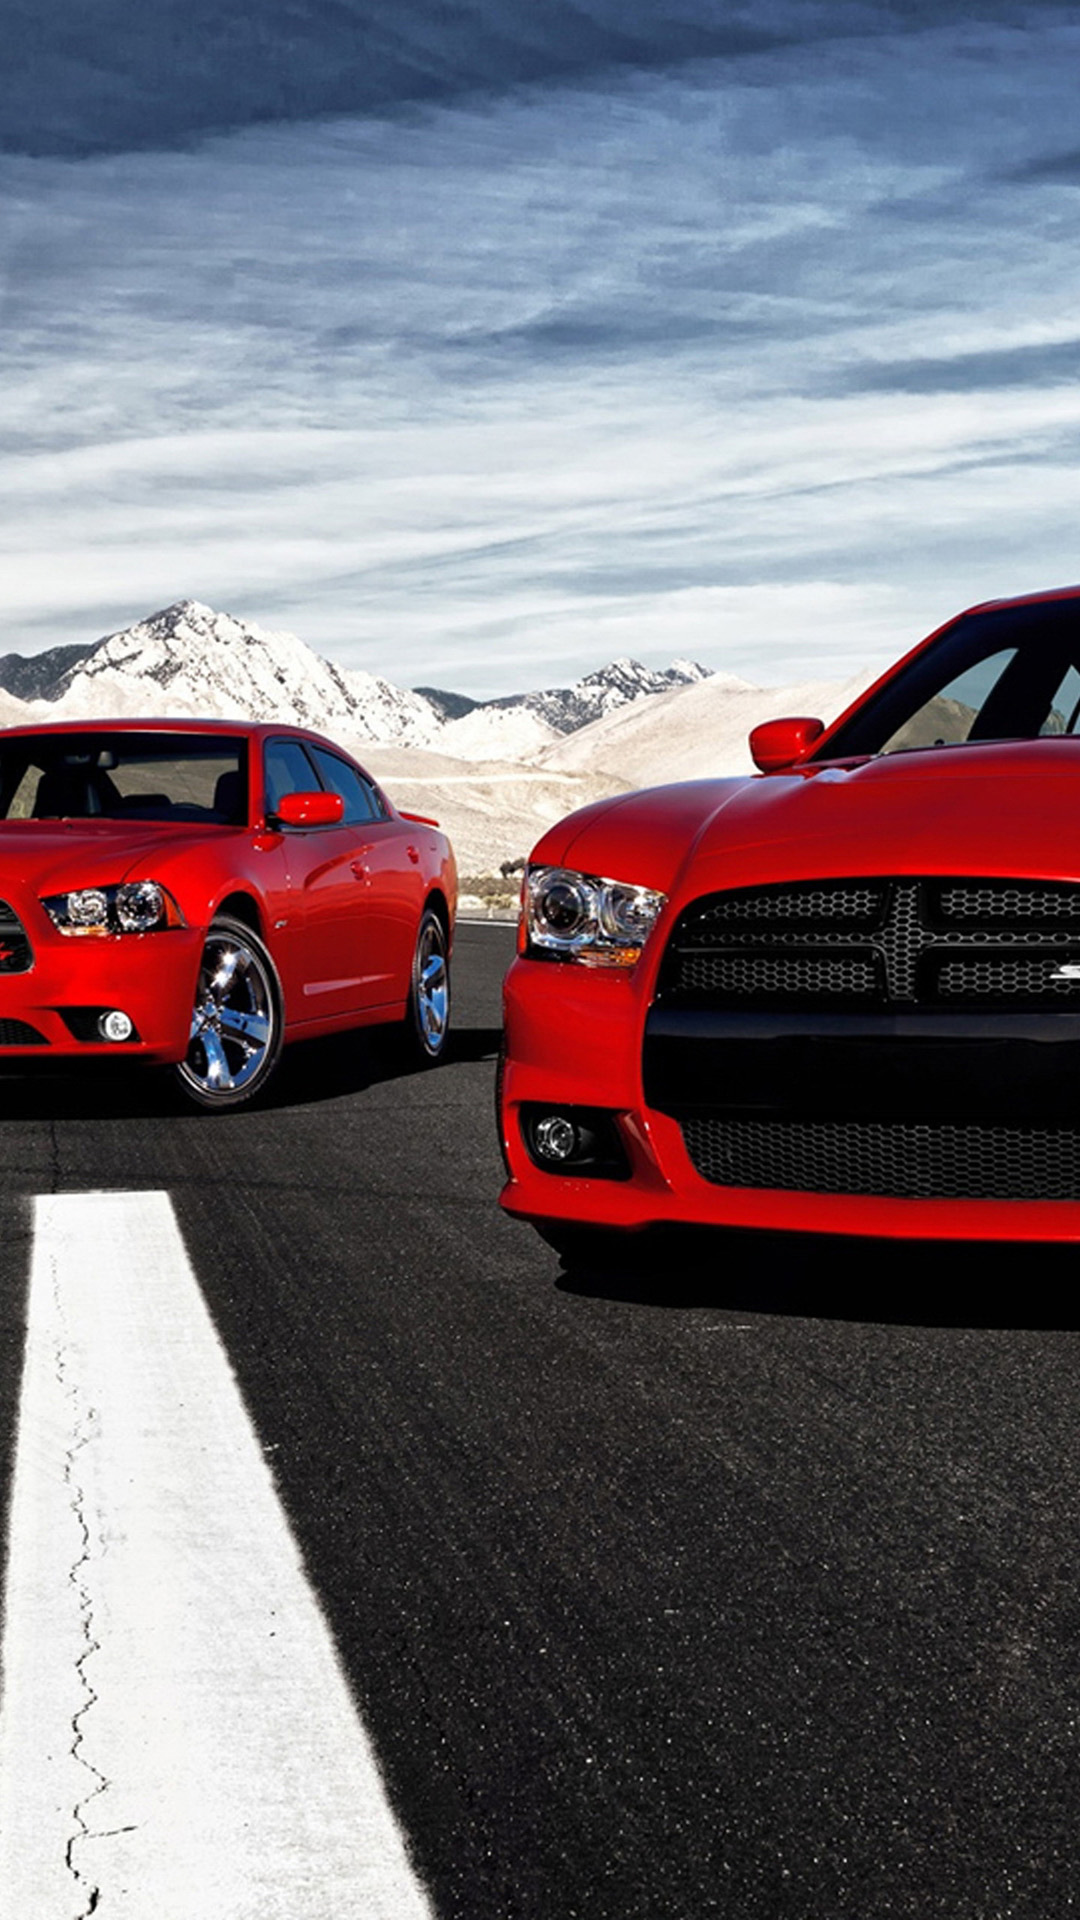 Dodge Charger Wallpaper hd Iphone Dodge Charger hd Wallpaper 1080x1920